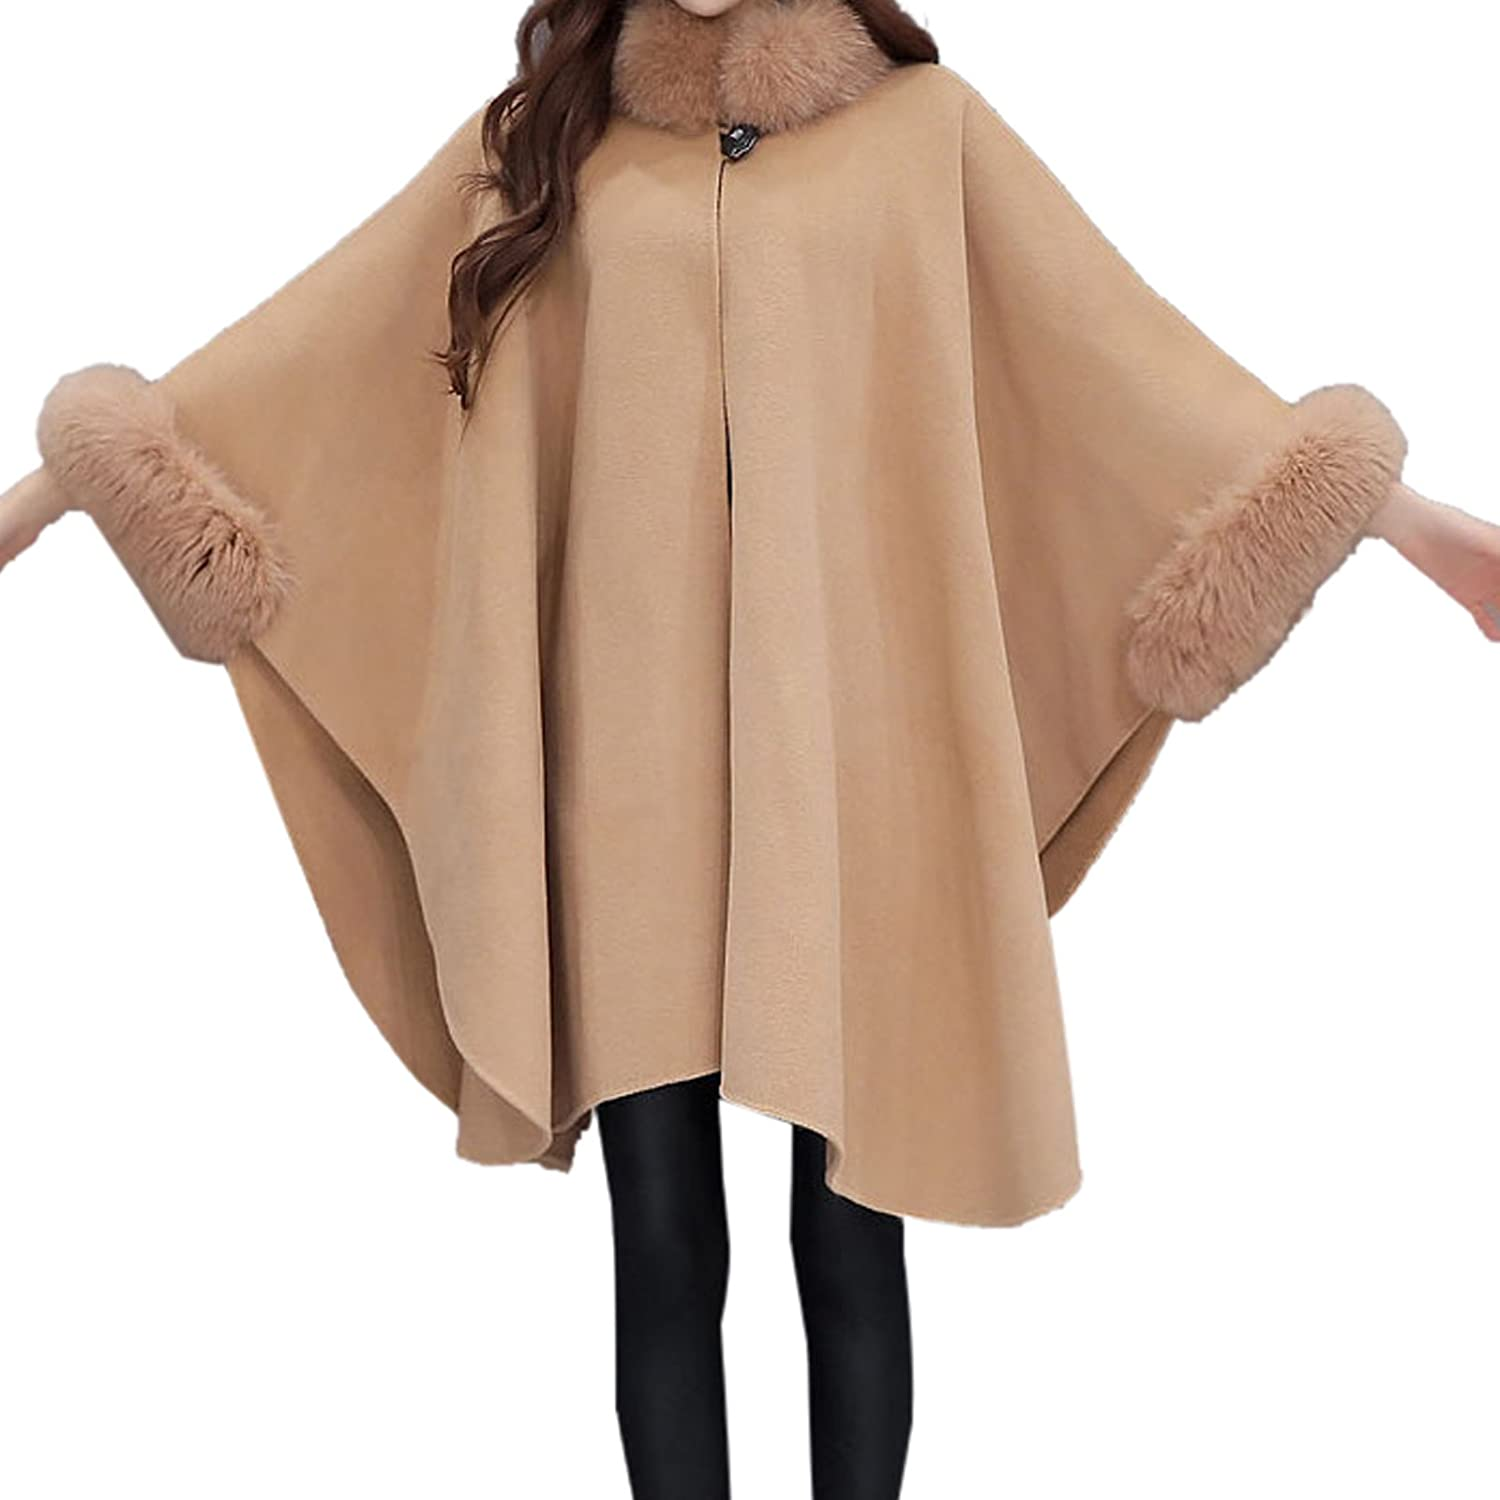 WSLCN Womens Cape Poncho Coat Faux Fur Buckle Collar Coat Bat Sleeve WT0438